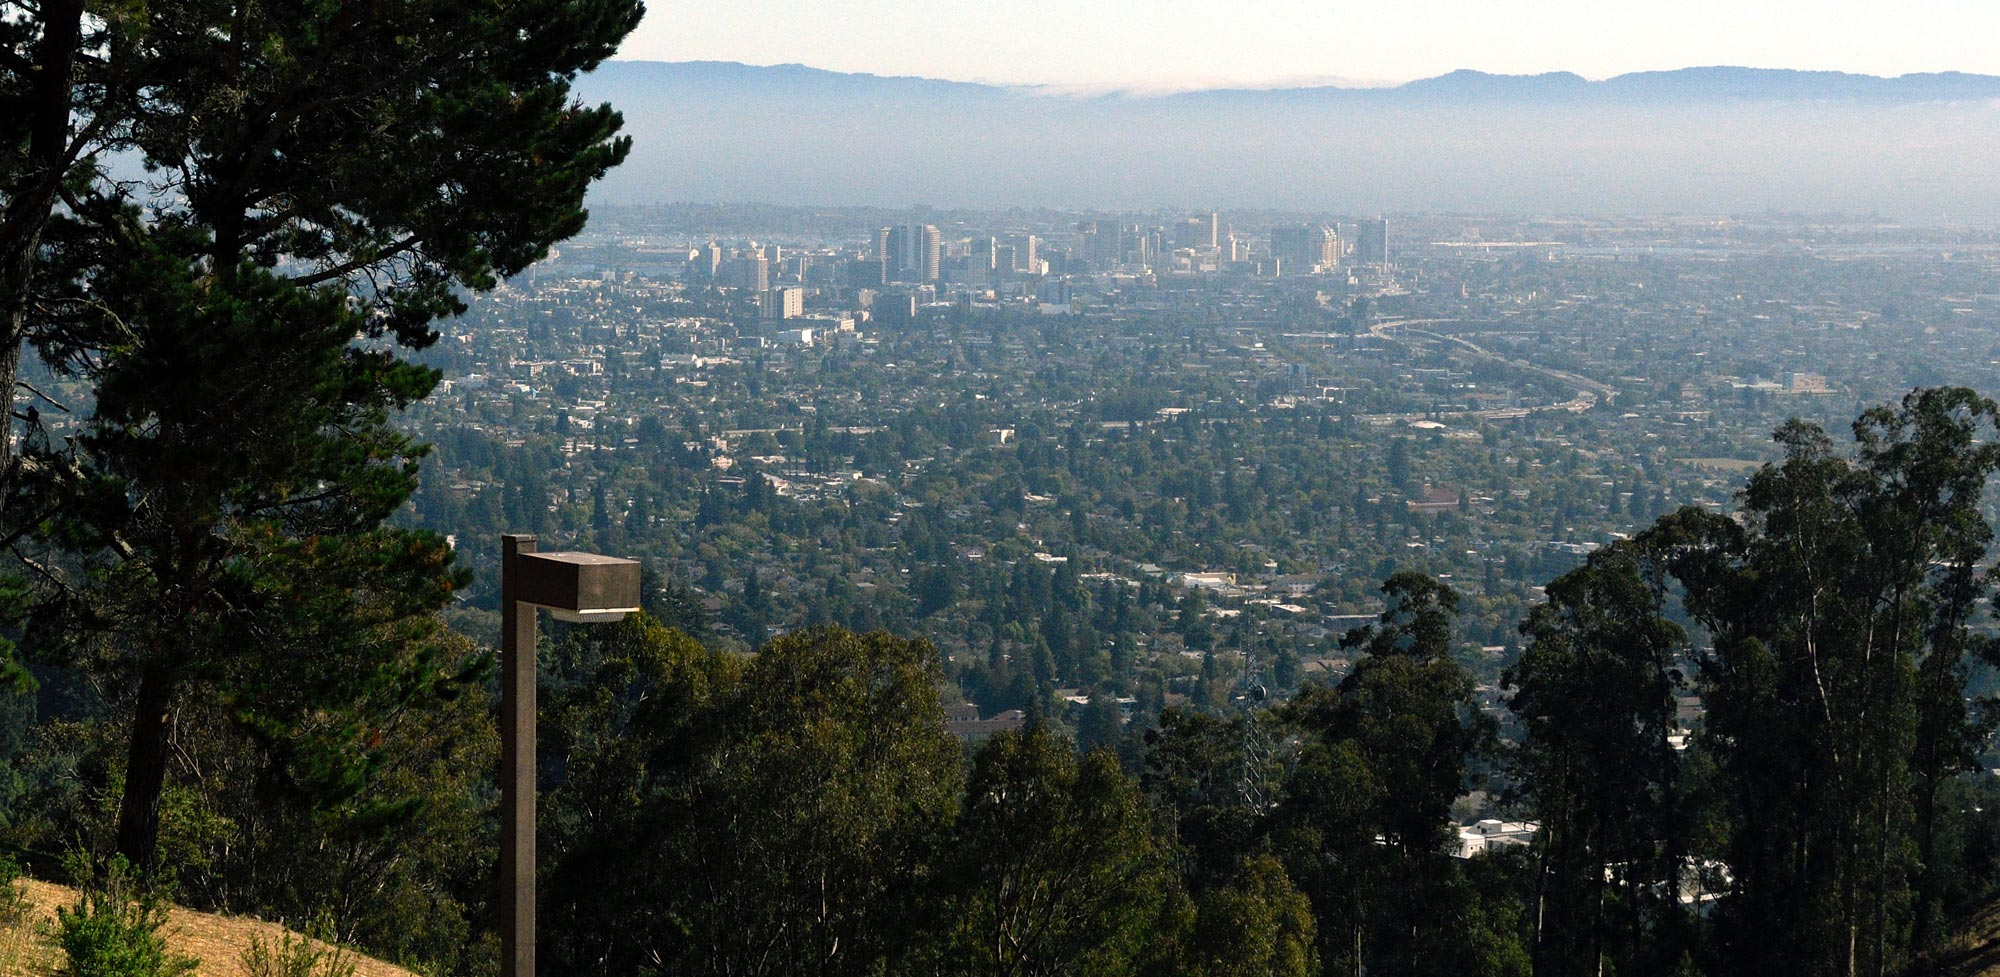 Housing Crisis No More: Ruegg & Ellsworth v. City of Berkeley Is A Step Toward Addressing the State's Housing Shortage -